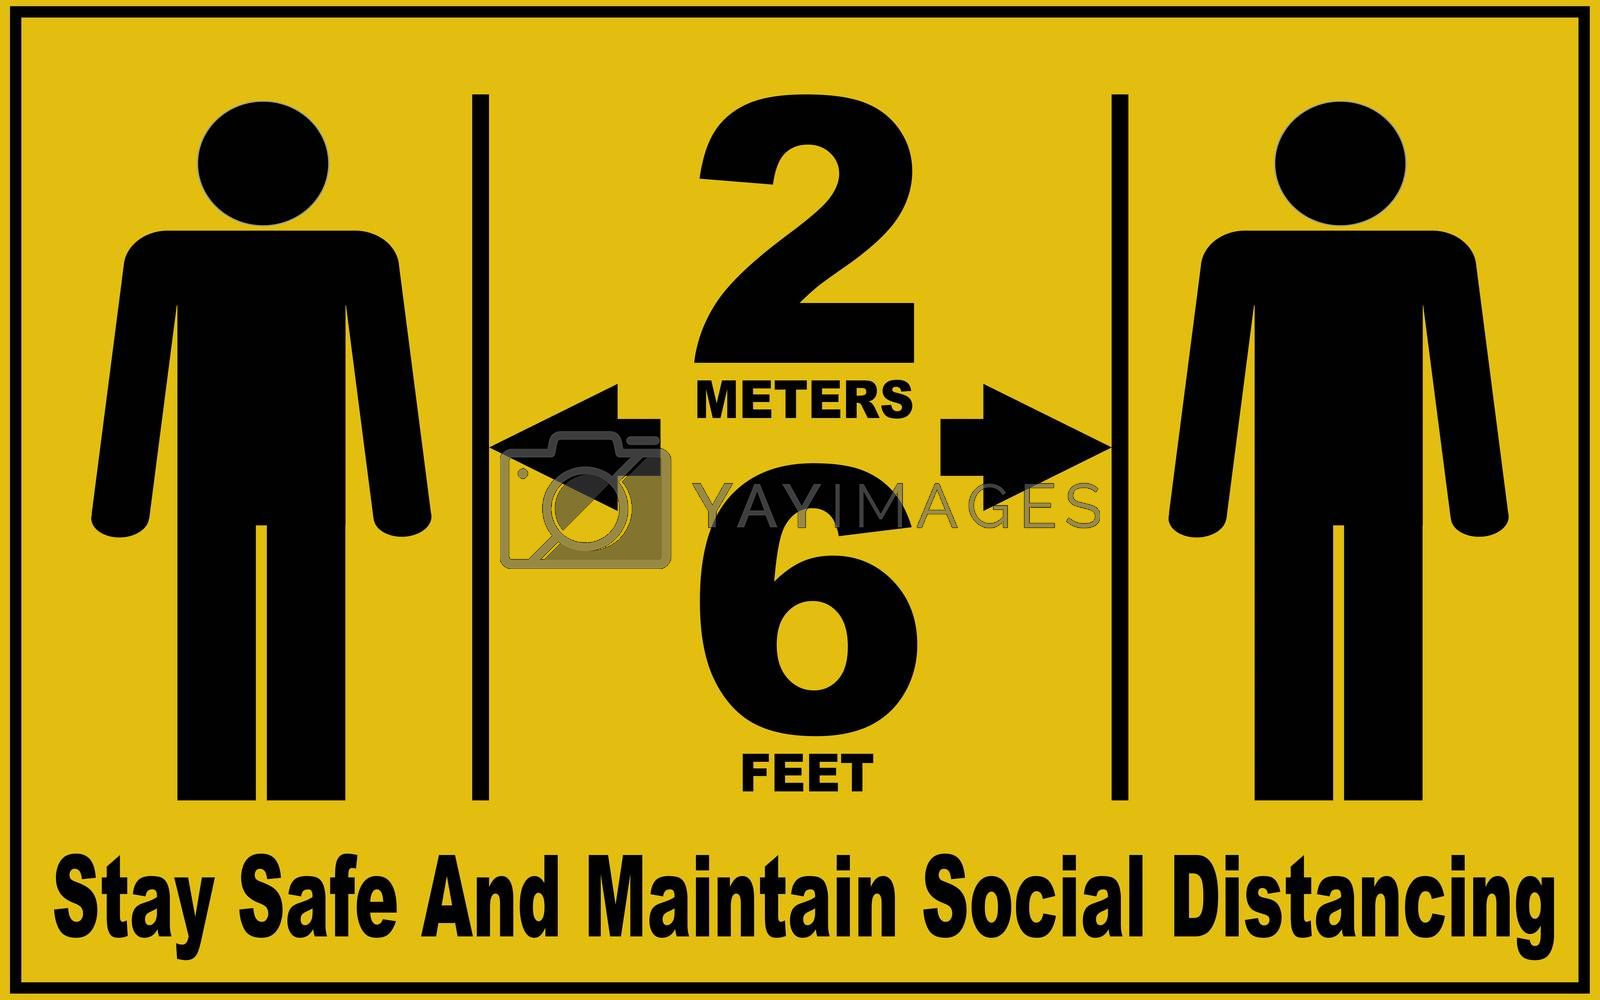 Social distance sign board with two persons, arrows, text with distances mentioning 6 feet, 2 meters, to stay safe and to maintain social distancing